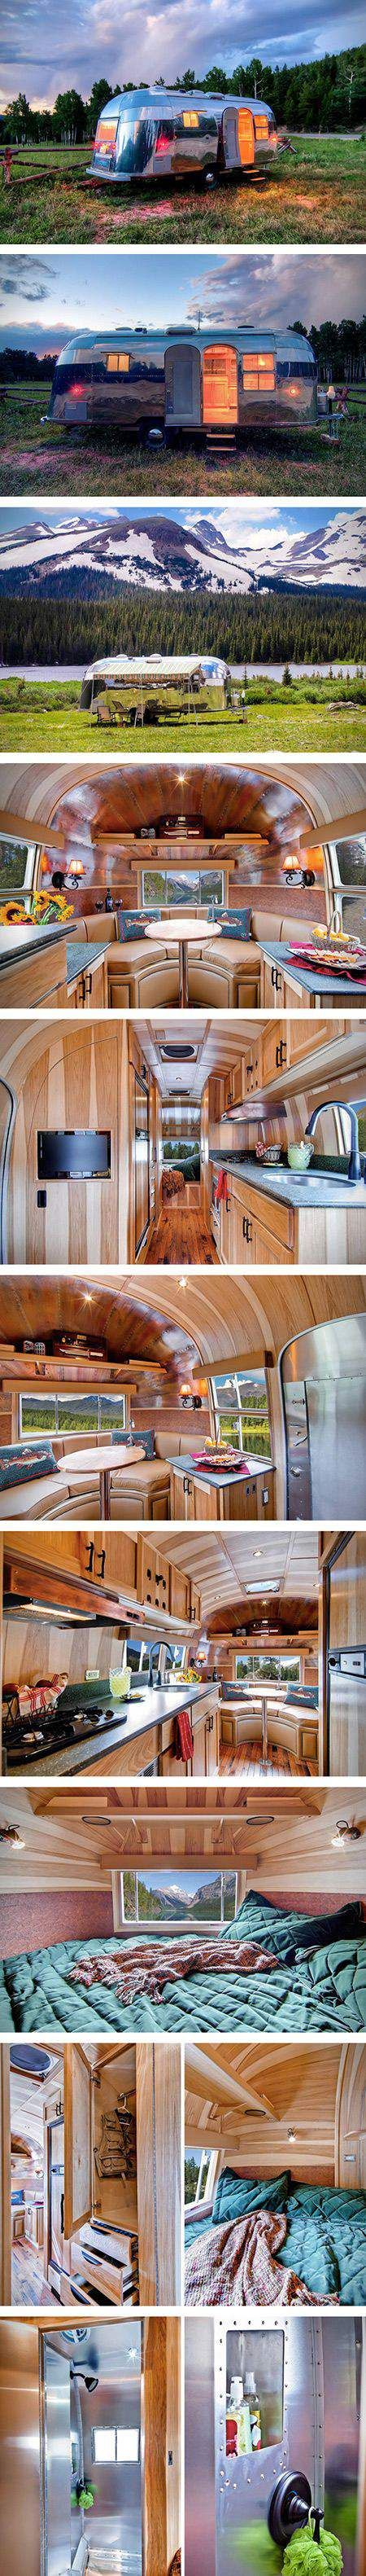 10 airstream interior ideas                                                                                                                                                                                 More